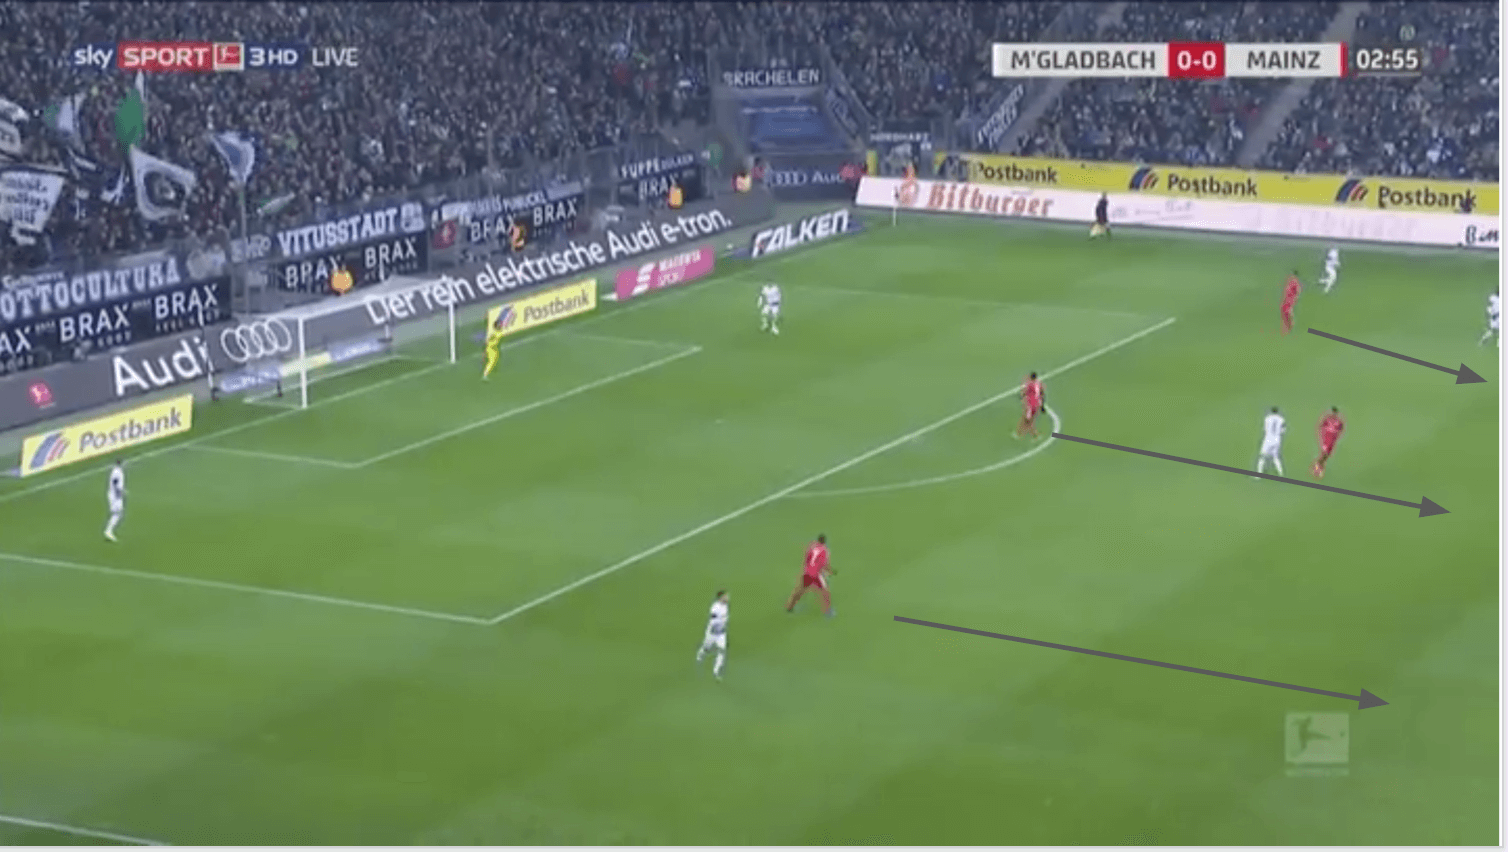 Bundesliga 2019/20: Borussia Mönchengladbach vs Mainz tactical analysis tactics